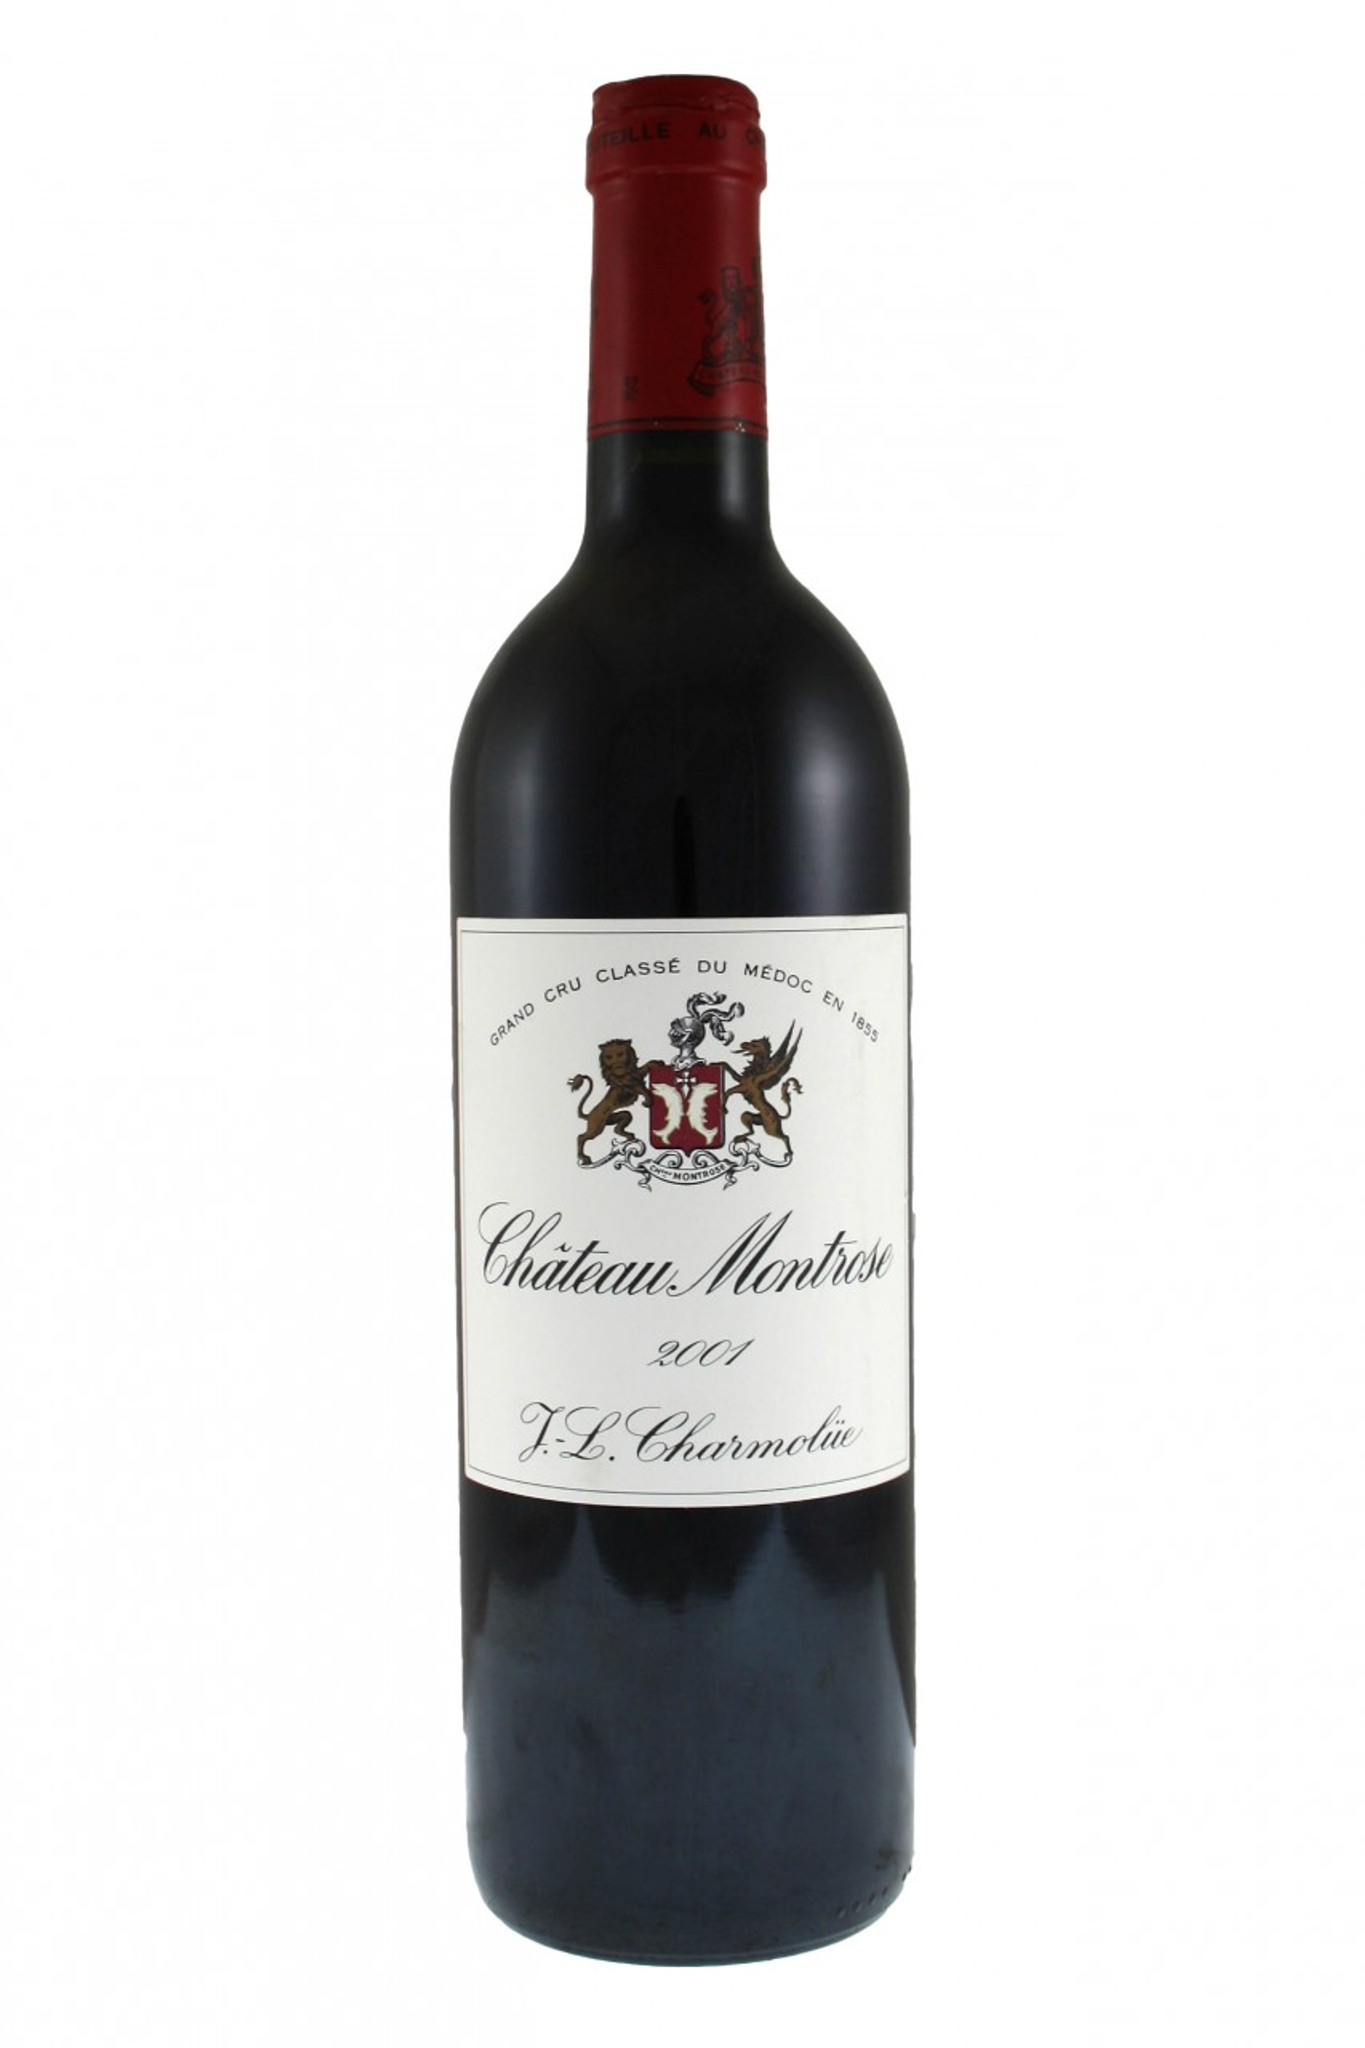 Chateau montrose 2001 chateau montrose from fraziers wine for Chateau montrose